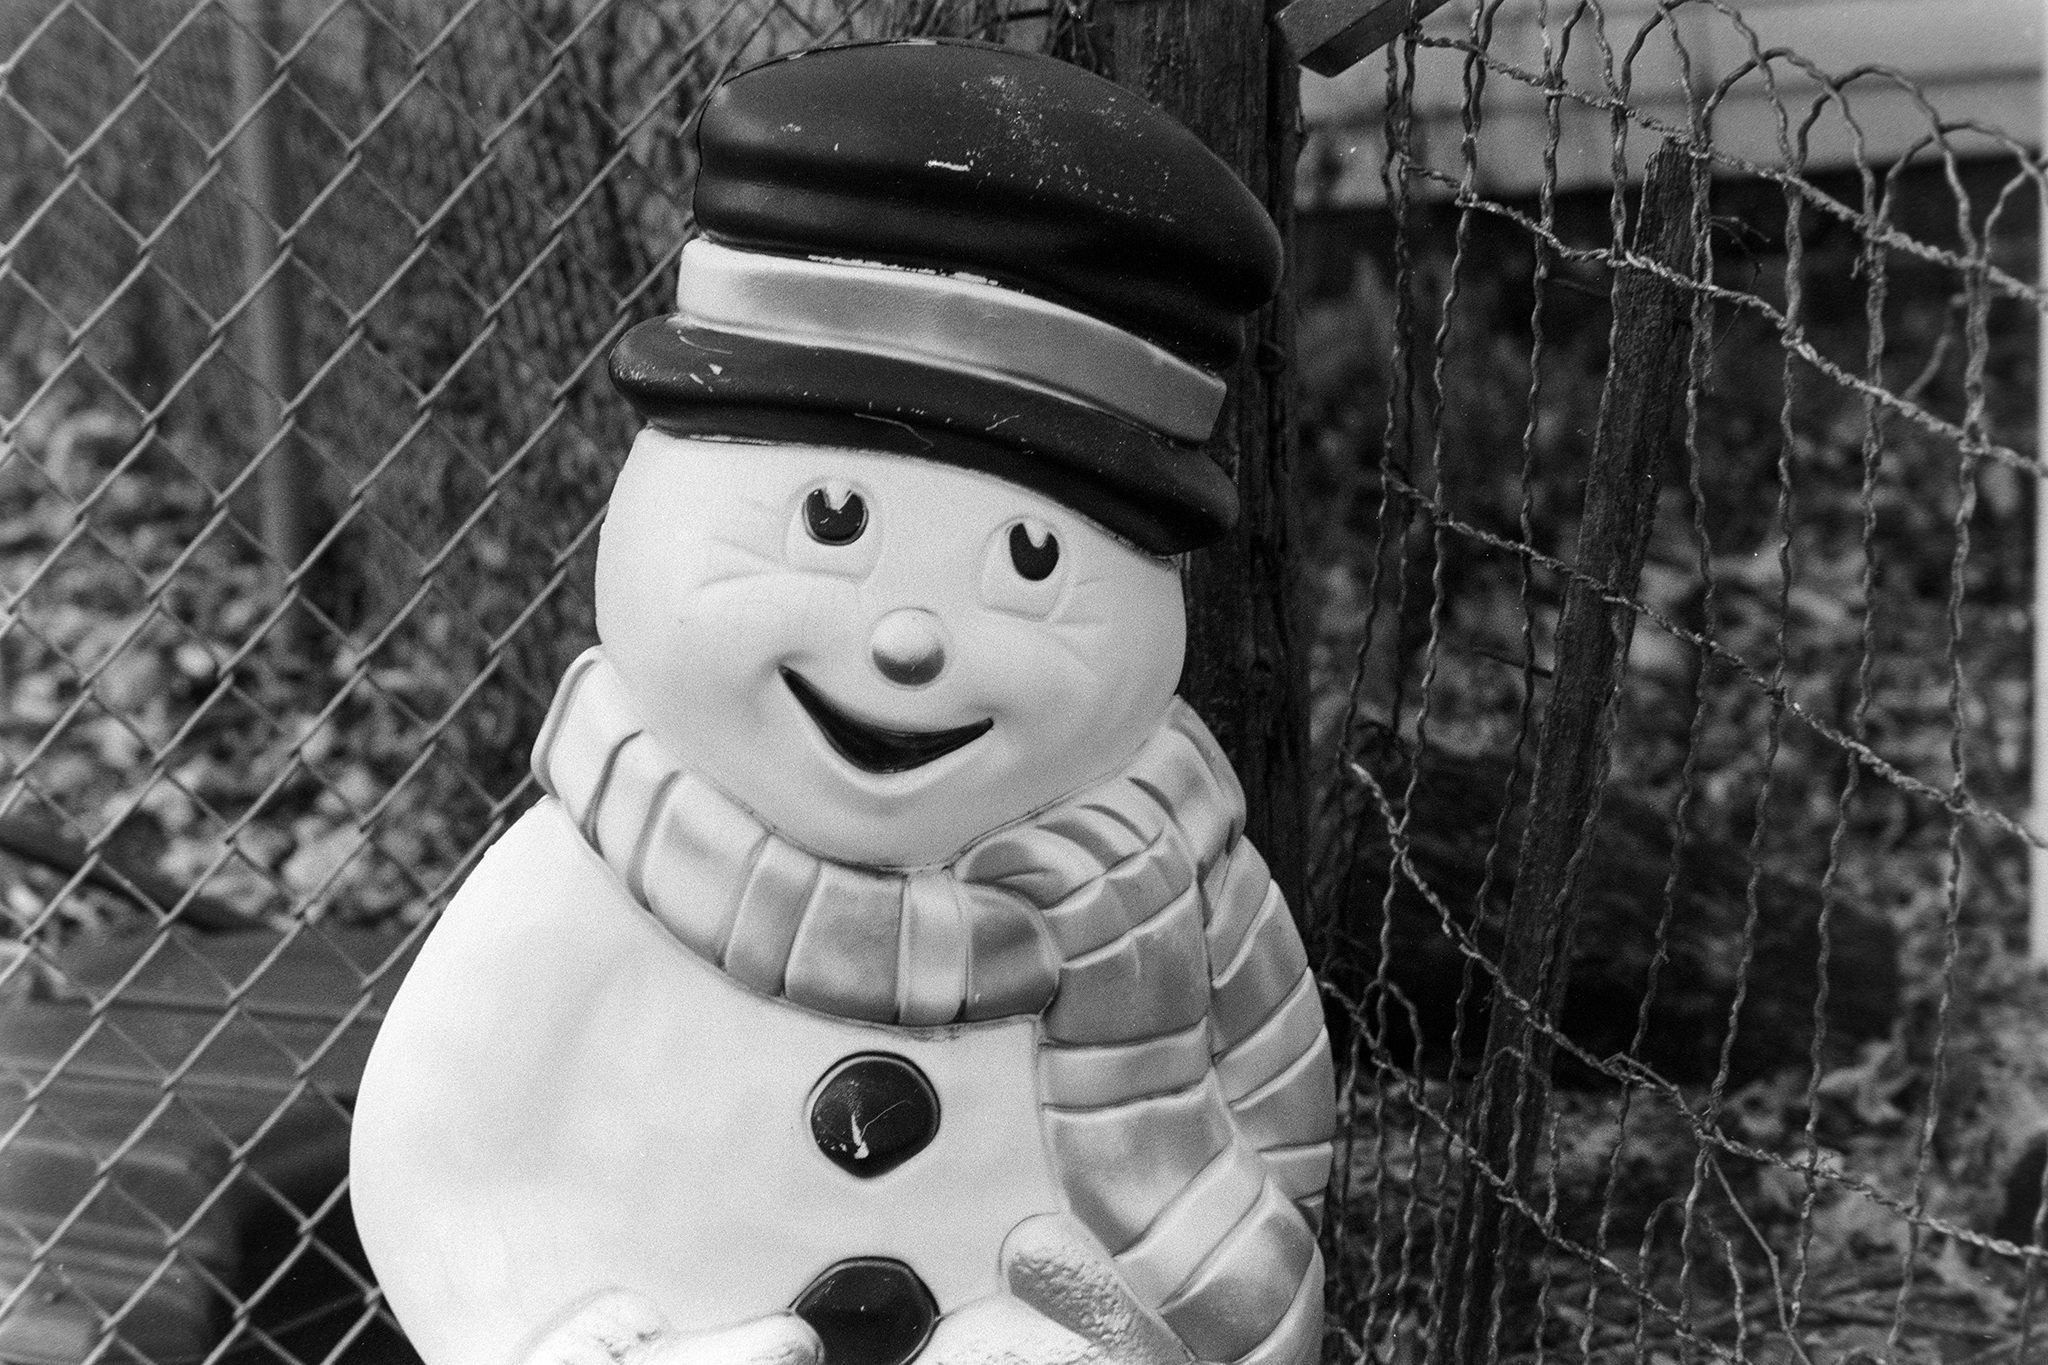 @r_endymion · 20h Replying to @ILFORDPhoto Snowman Nikon F4, Nikkor 85/1.8 AFD, Ilford Pan 50F+ expired 2015 EI 80 Diafine